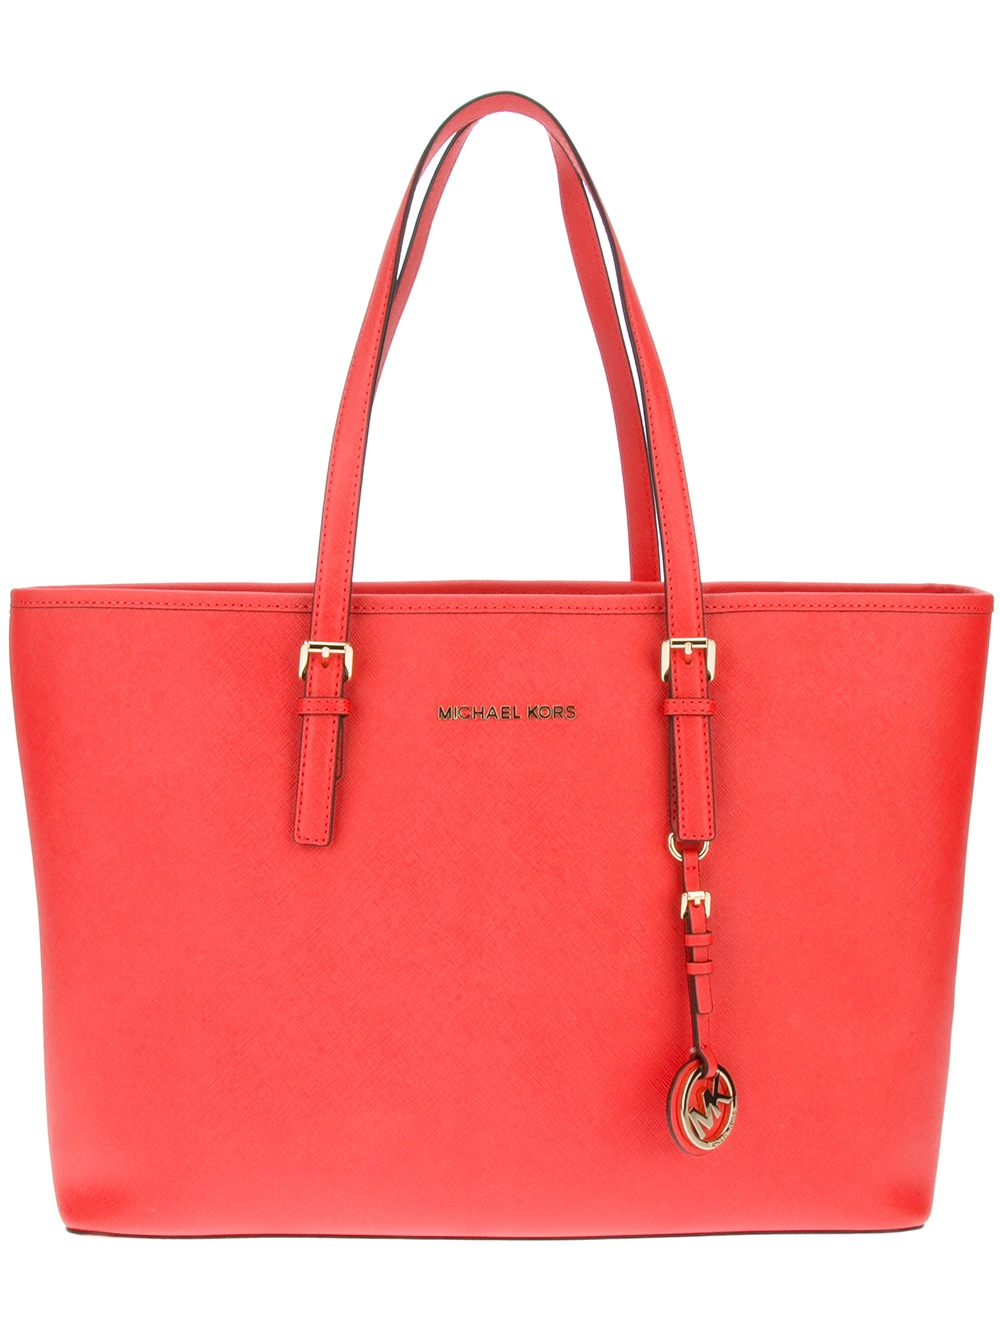 michael michael kors shopper tote in red lyst. Black Bedroom Furniture Sets. Home Design Ideas